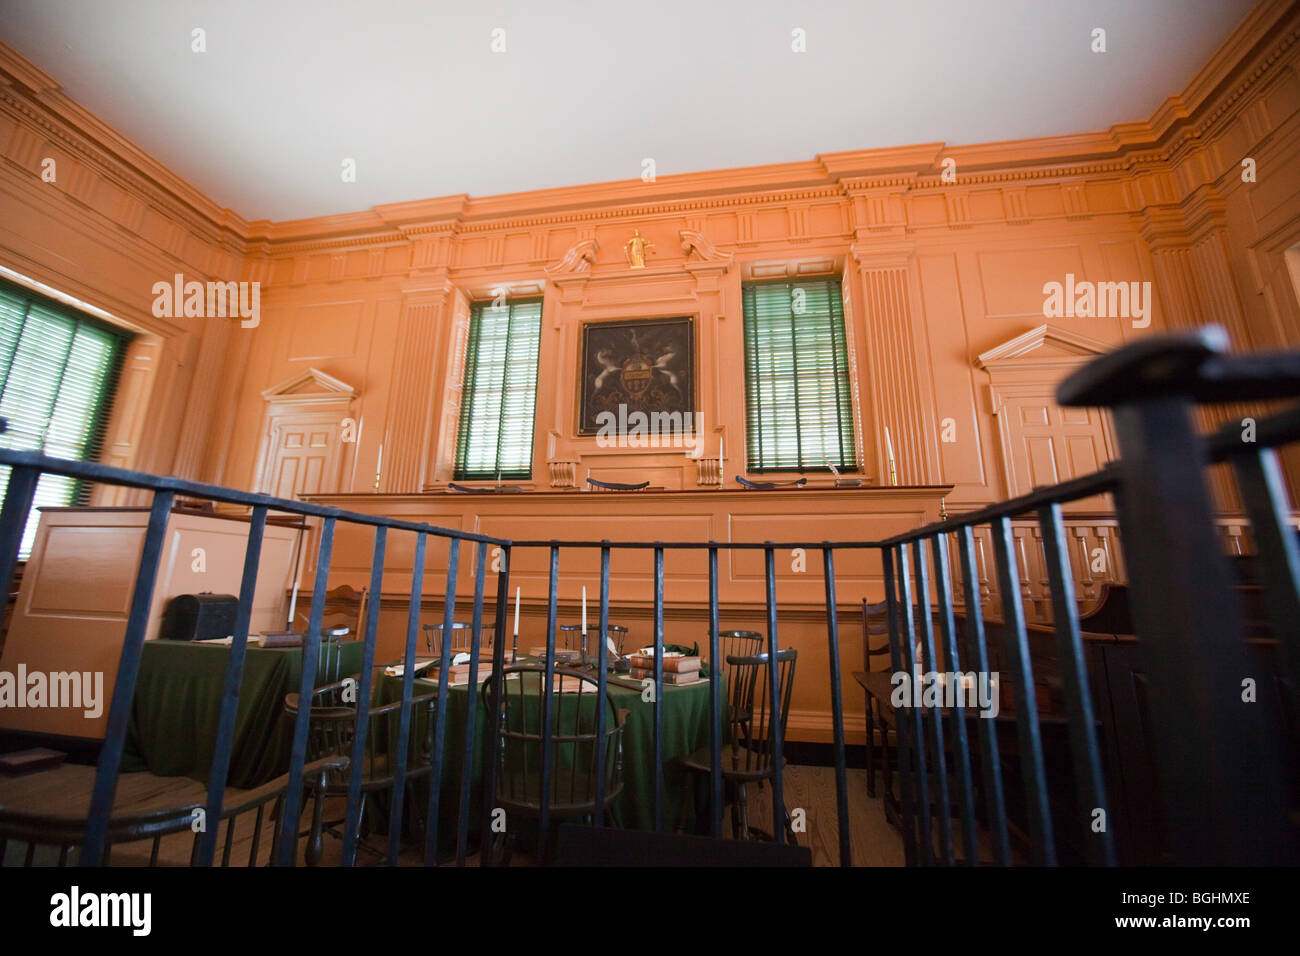 From the Defendant box in the Courtroom in Independence Hall in Philadelphia, Pennsylvania - Stock Image